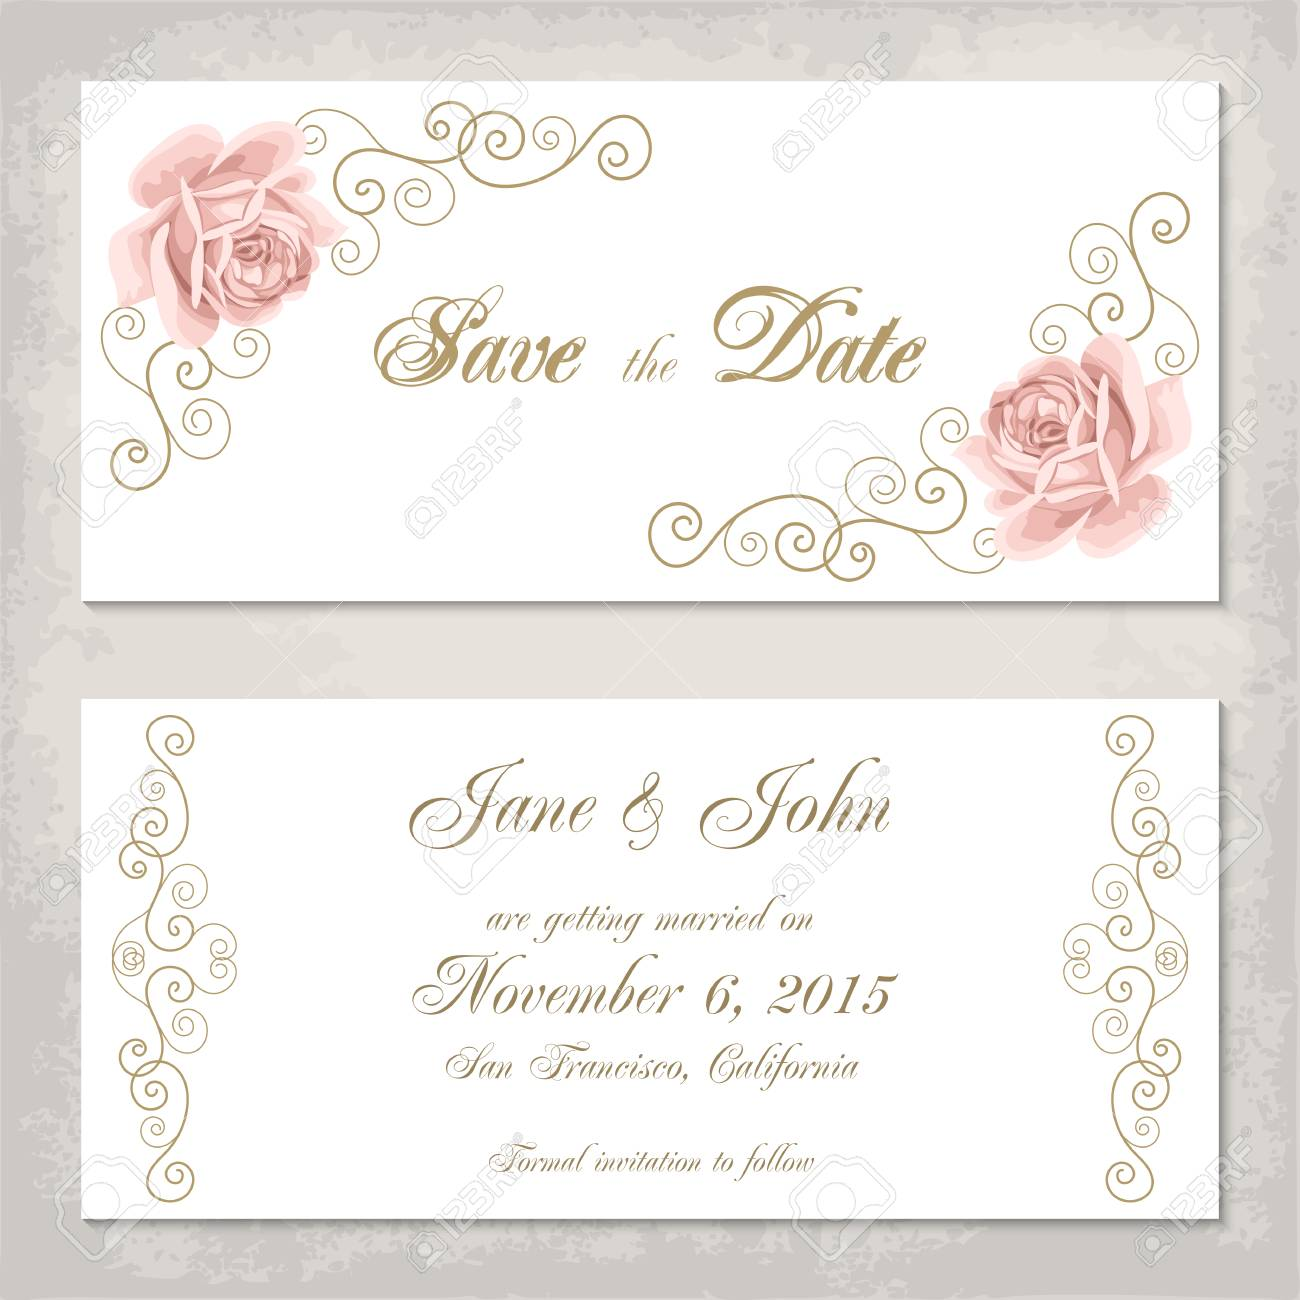 vintage invitation template with roses and golden curly design